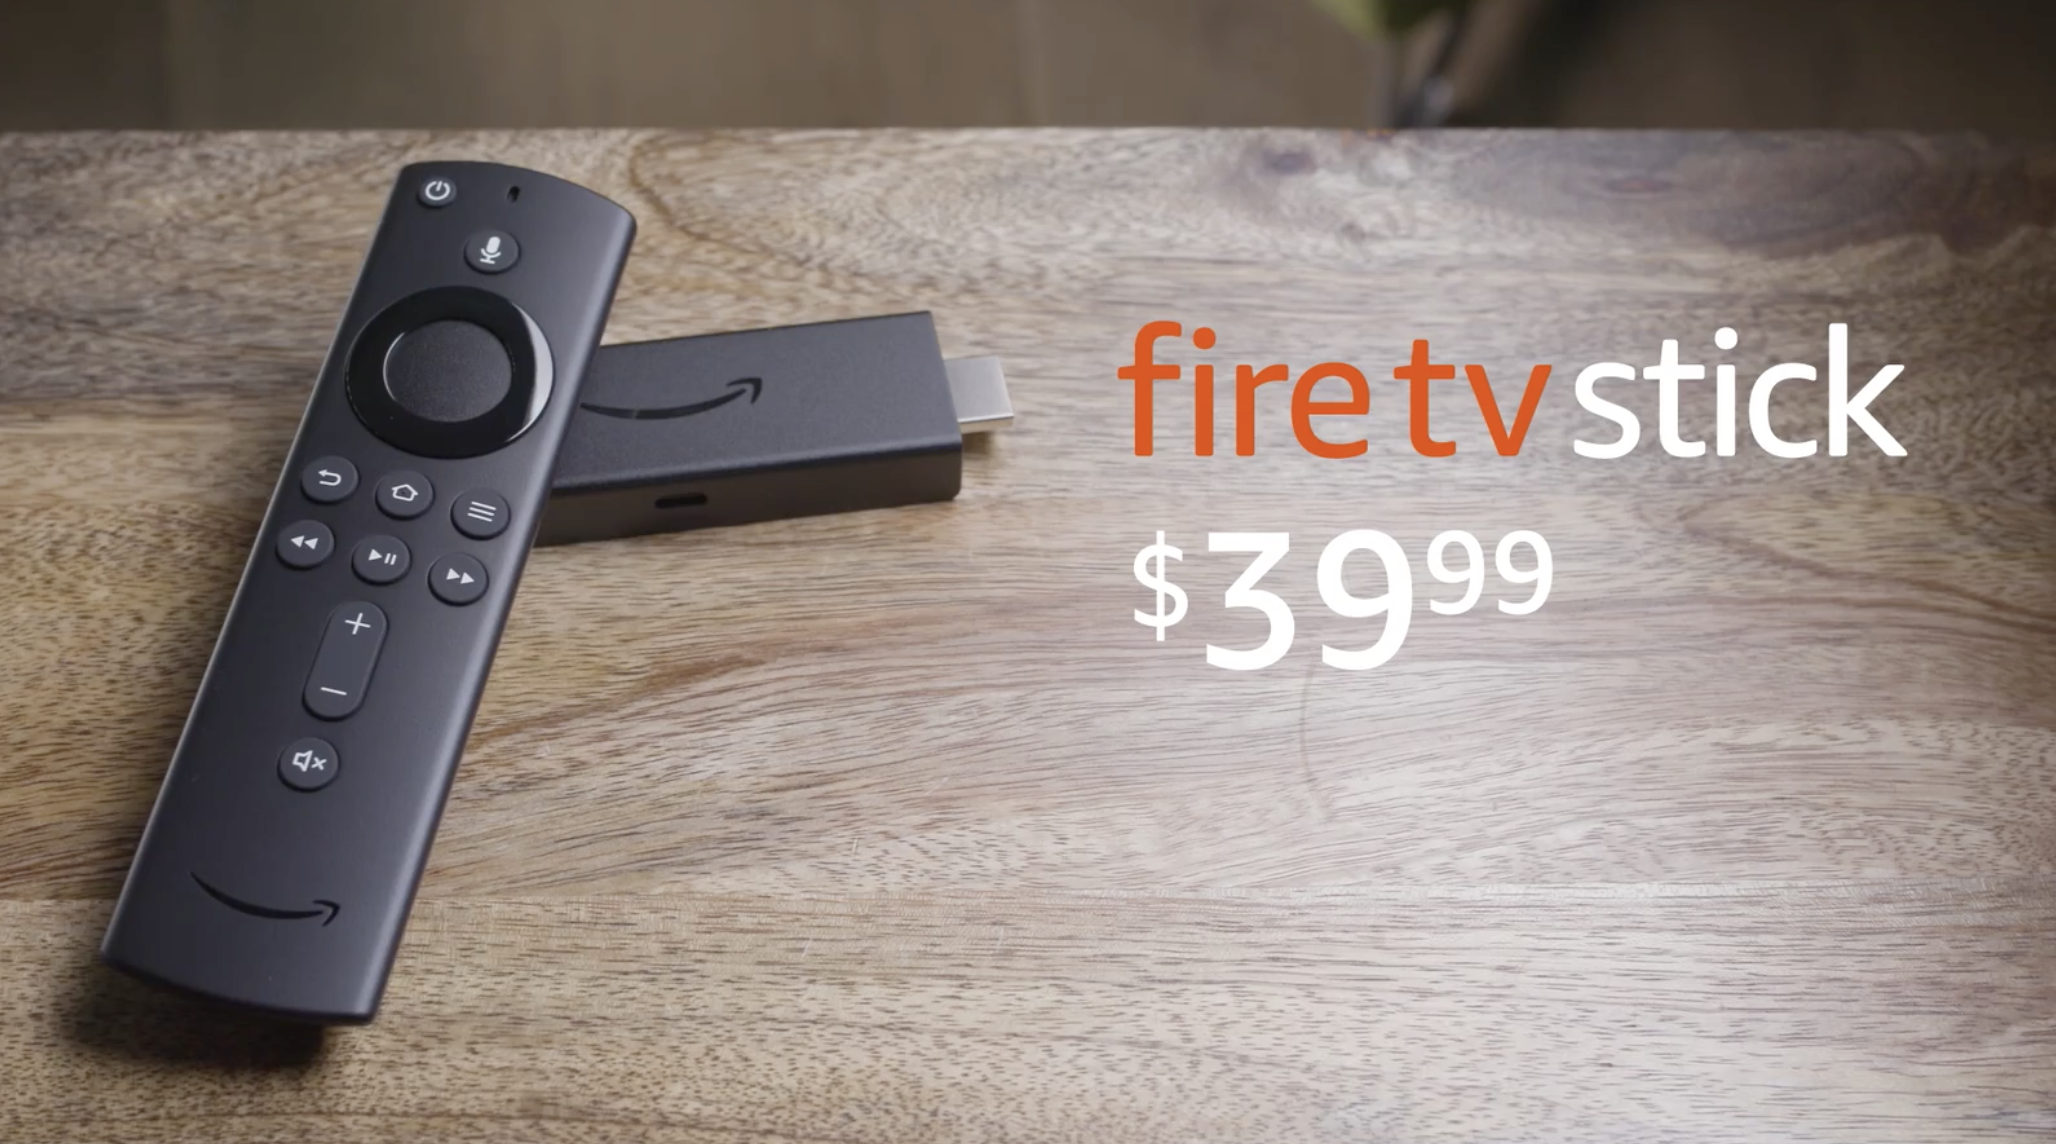 amazon-event-2020-fire-tv-stick-2.png